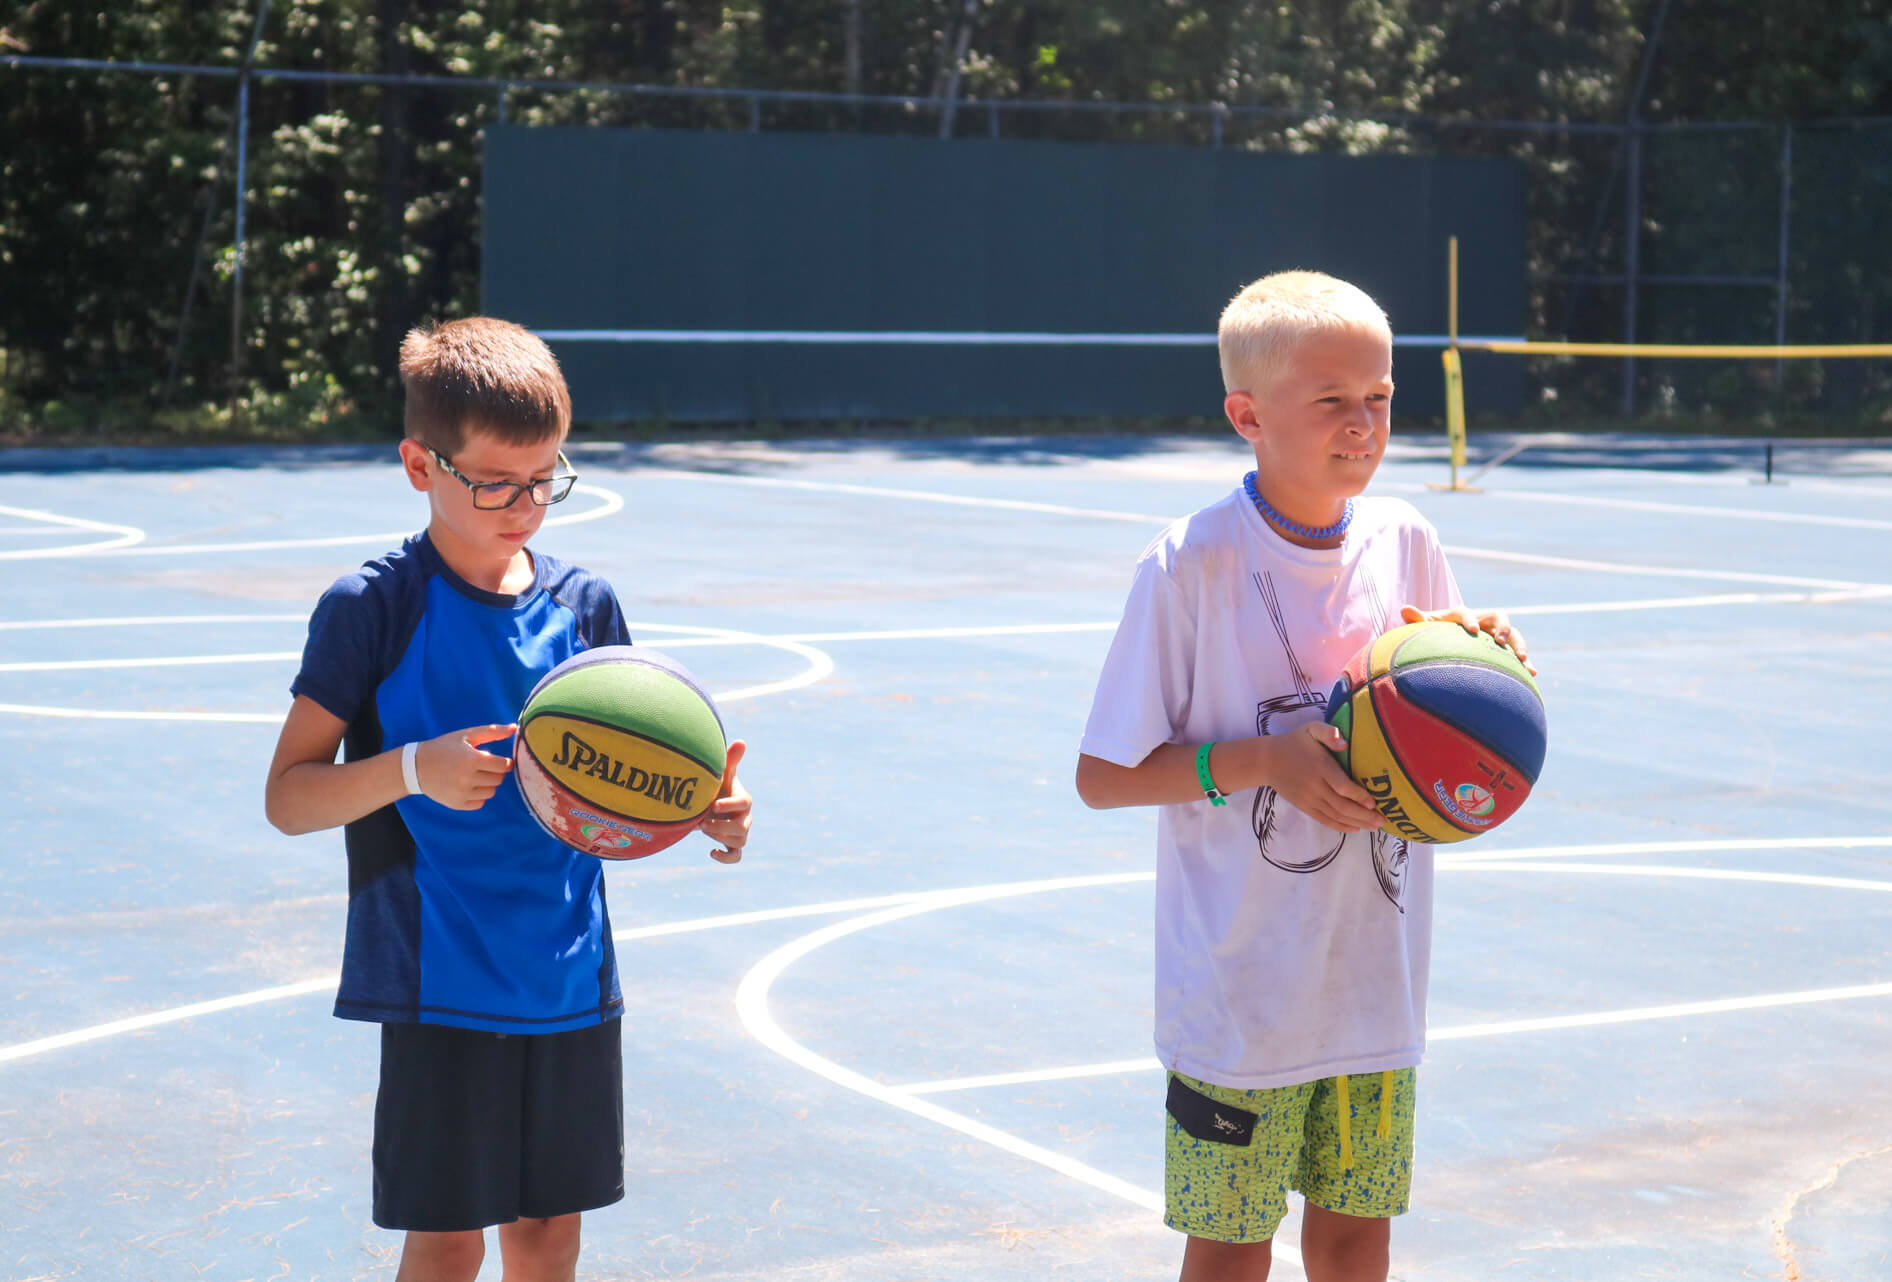 Two young campers hold colored basketballs